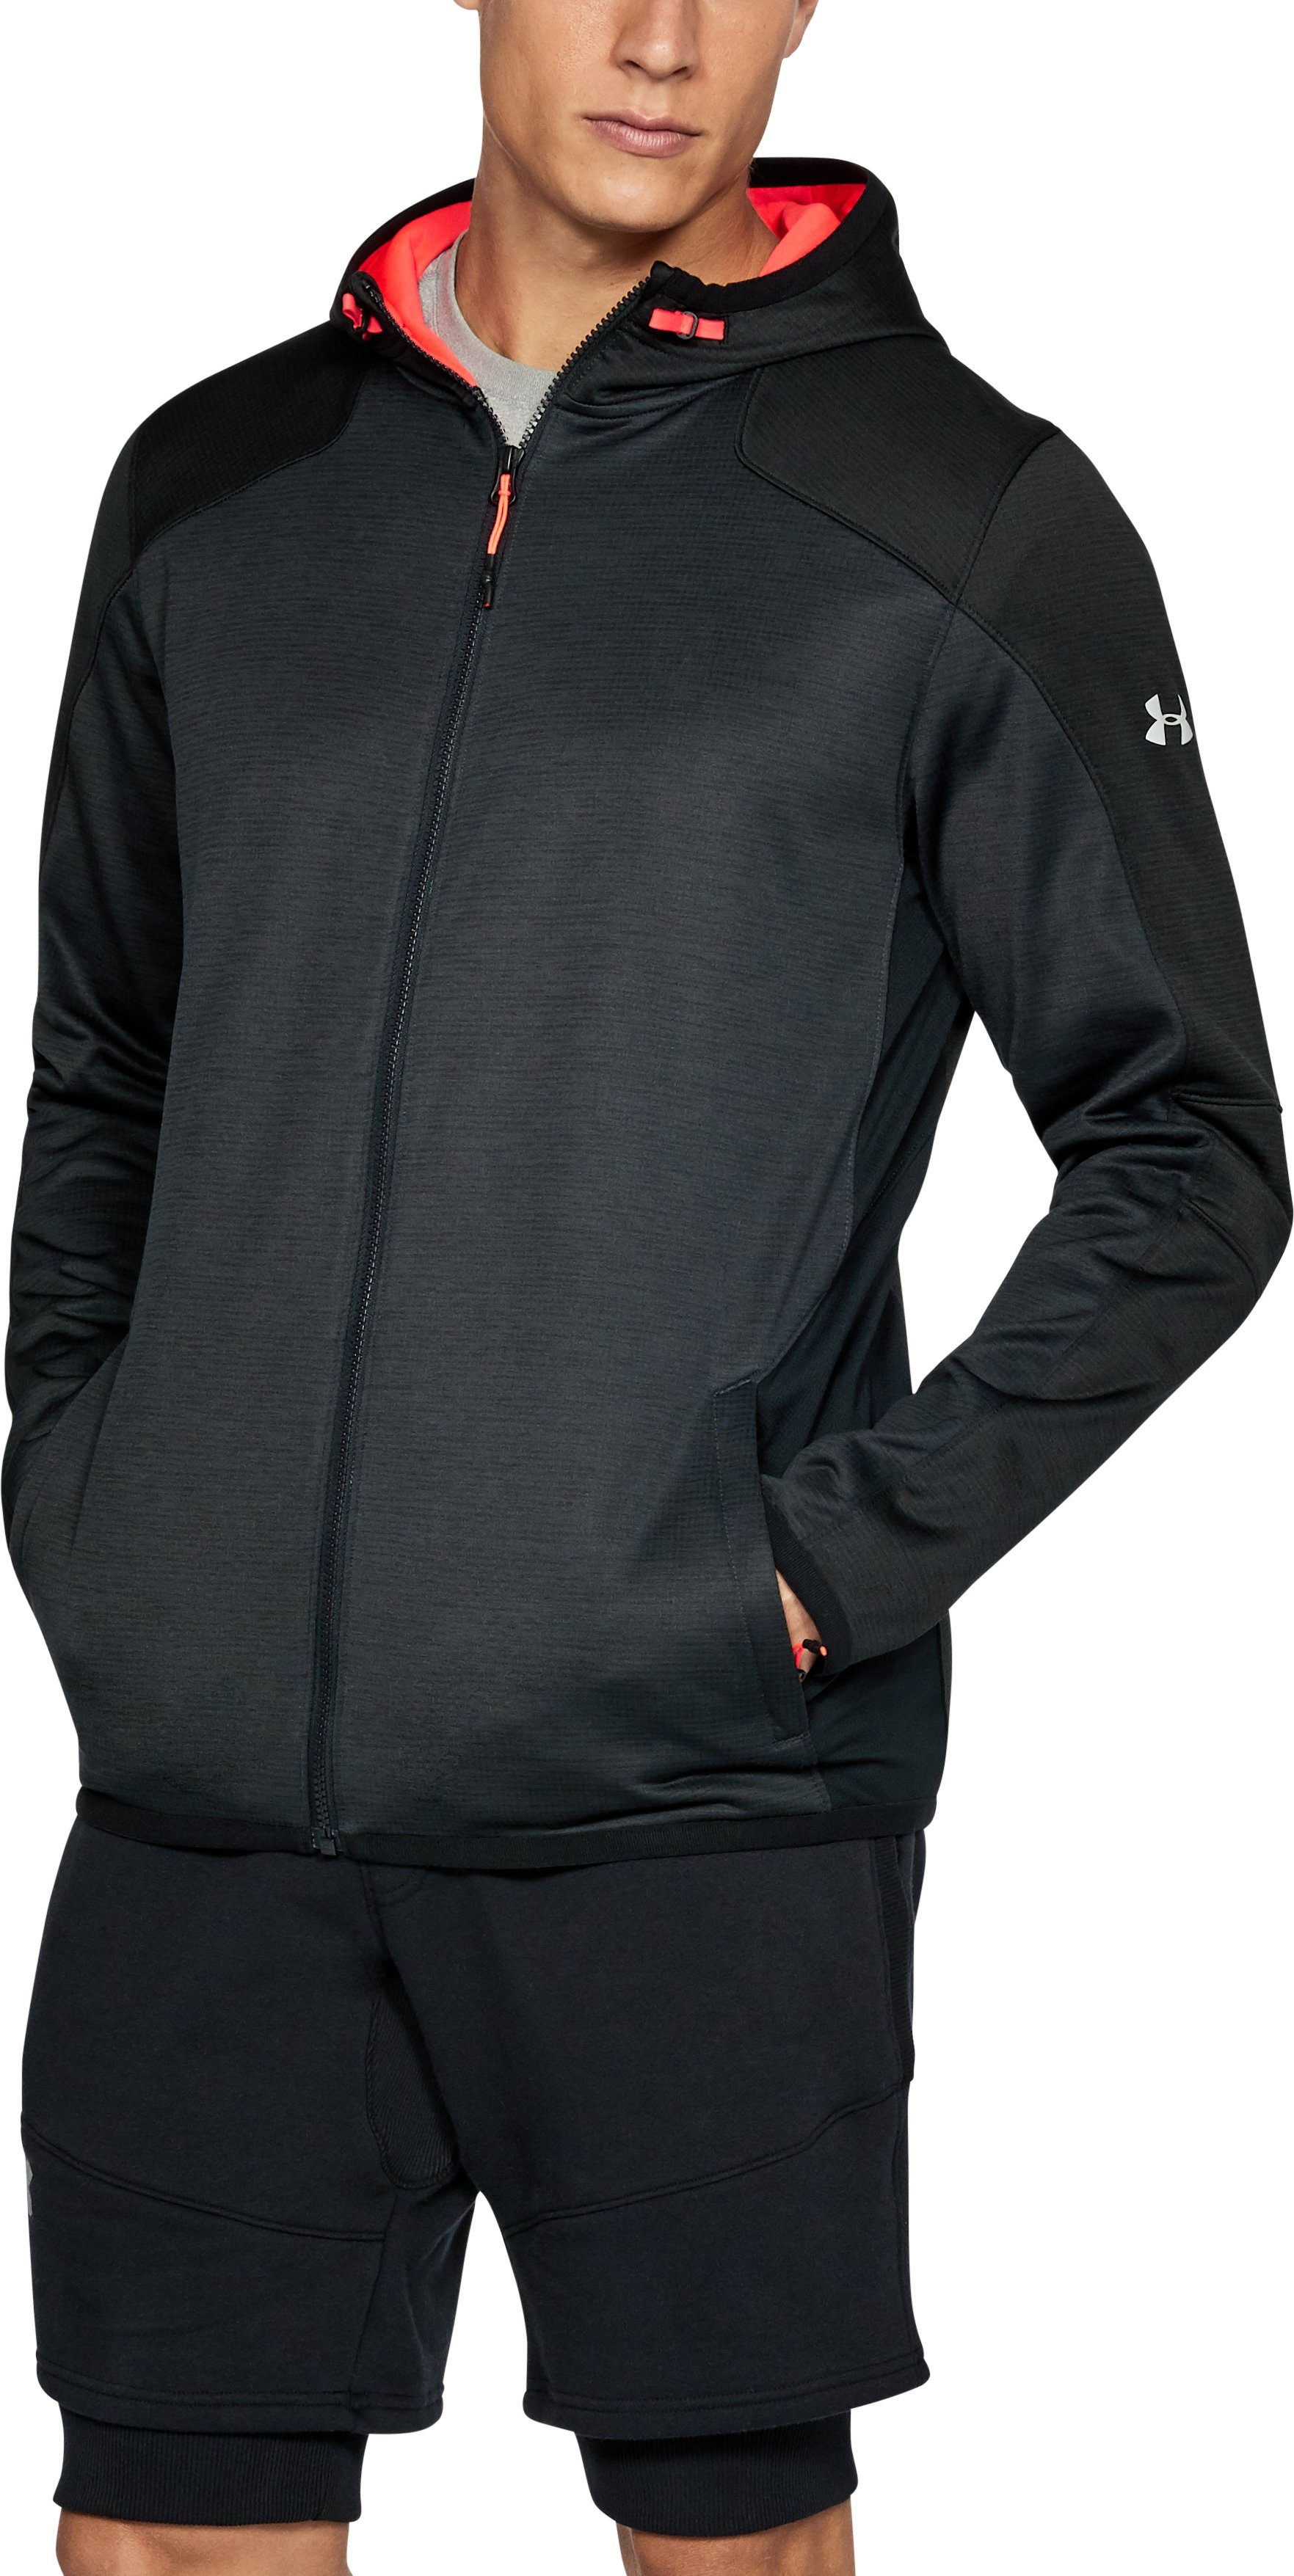 Men's ColdGear® Reactor Fleece Full Zip Hoodie, ANTHRACITE